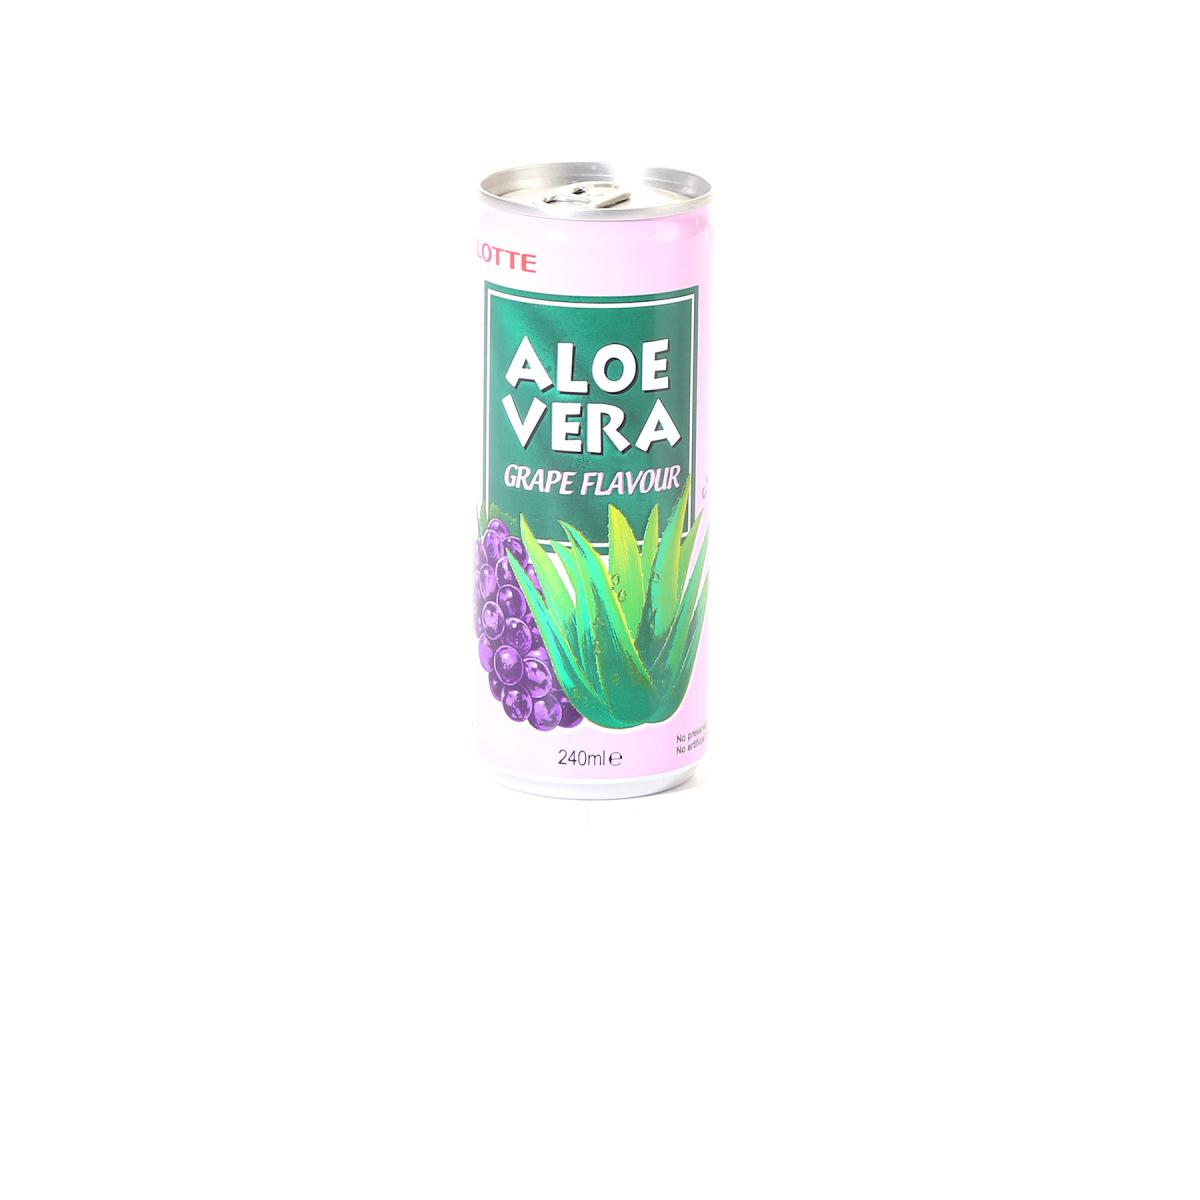 brajlovic aloe vera traube drink im unimarkt online shop bestellen. Black Bedroom Furniture Sets. Home Design Ideas